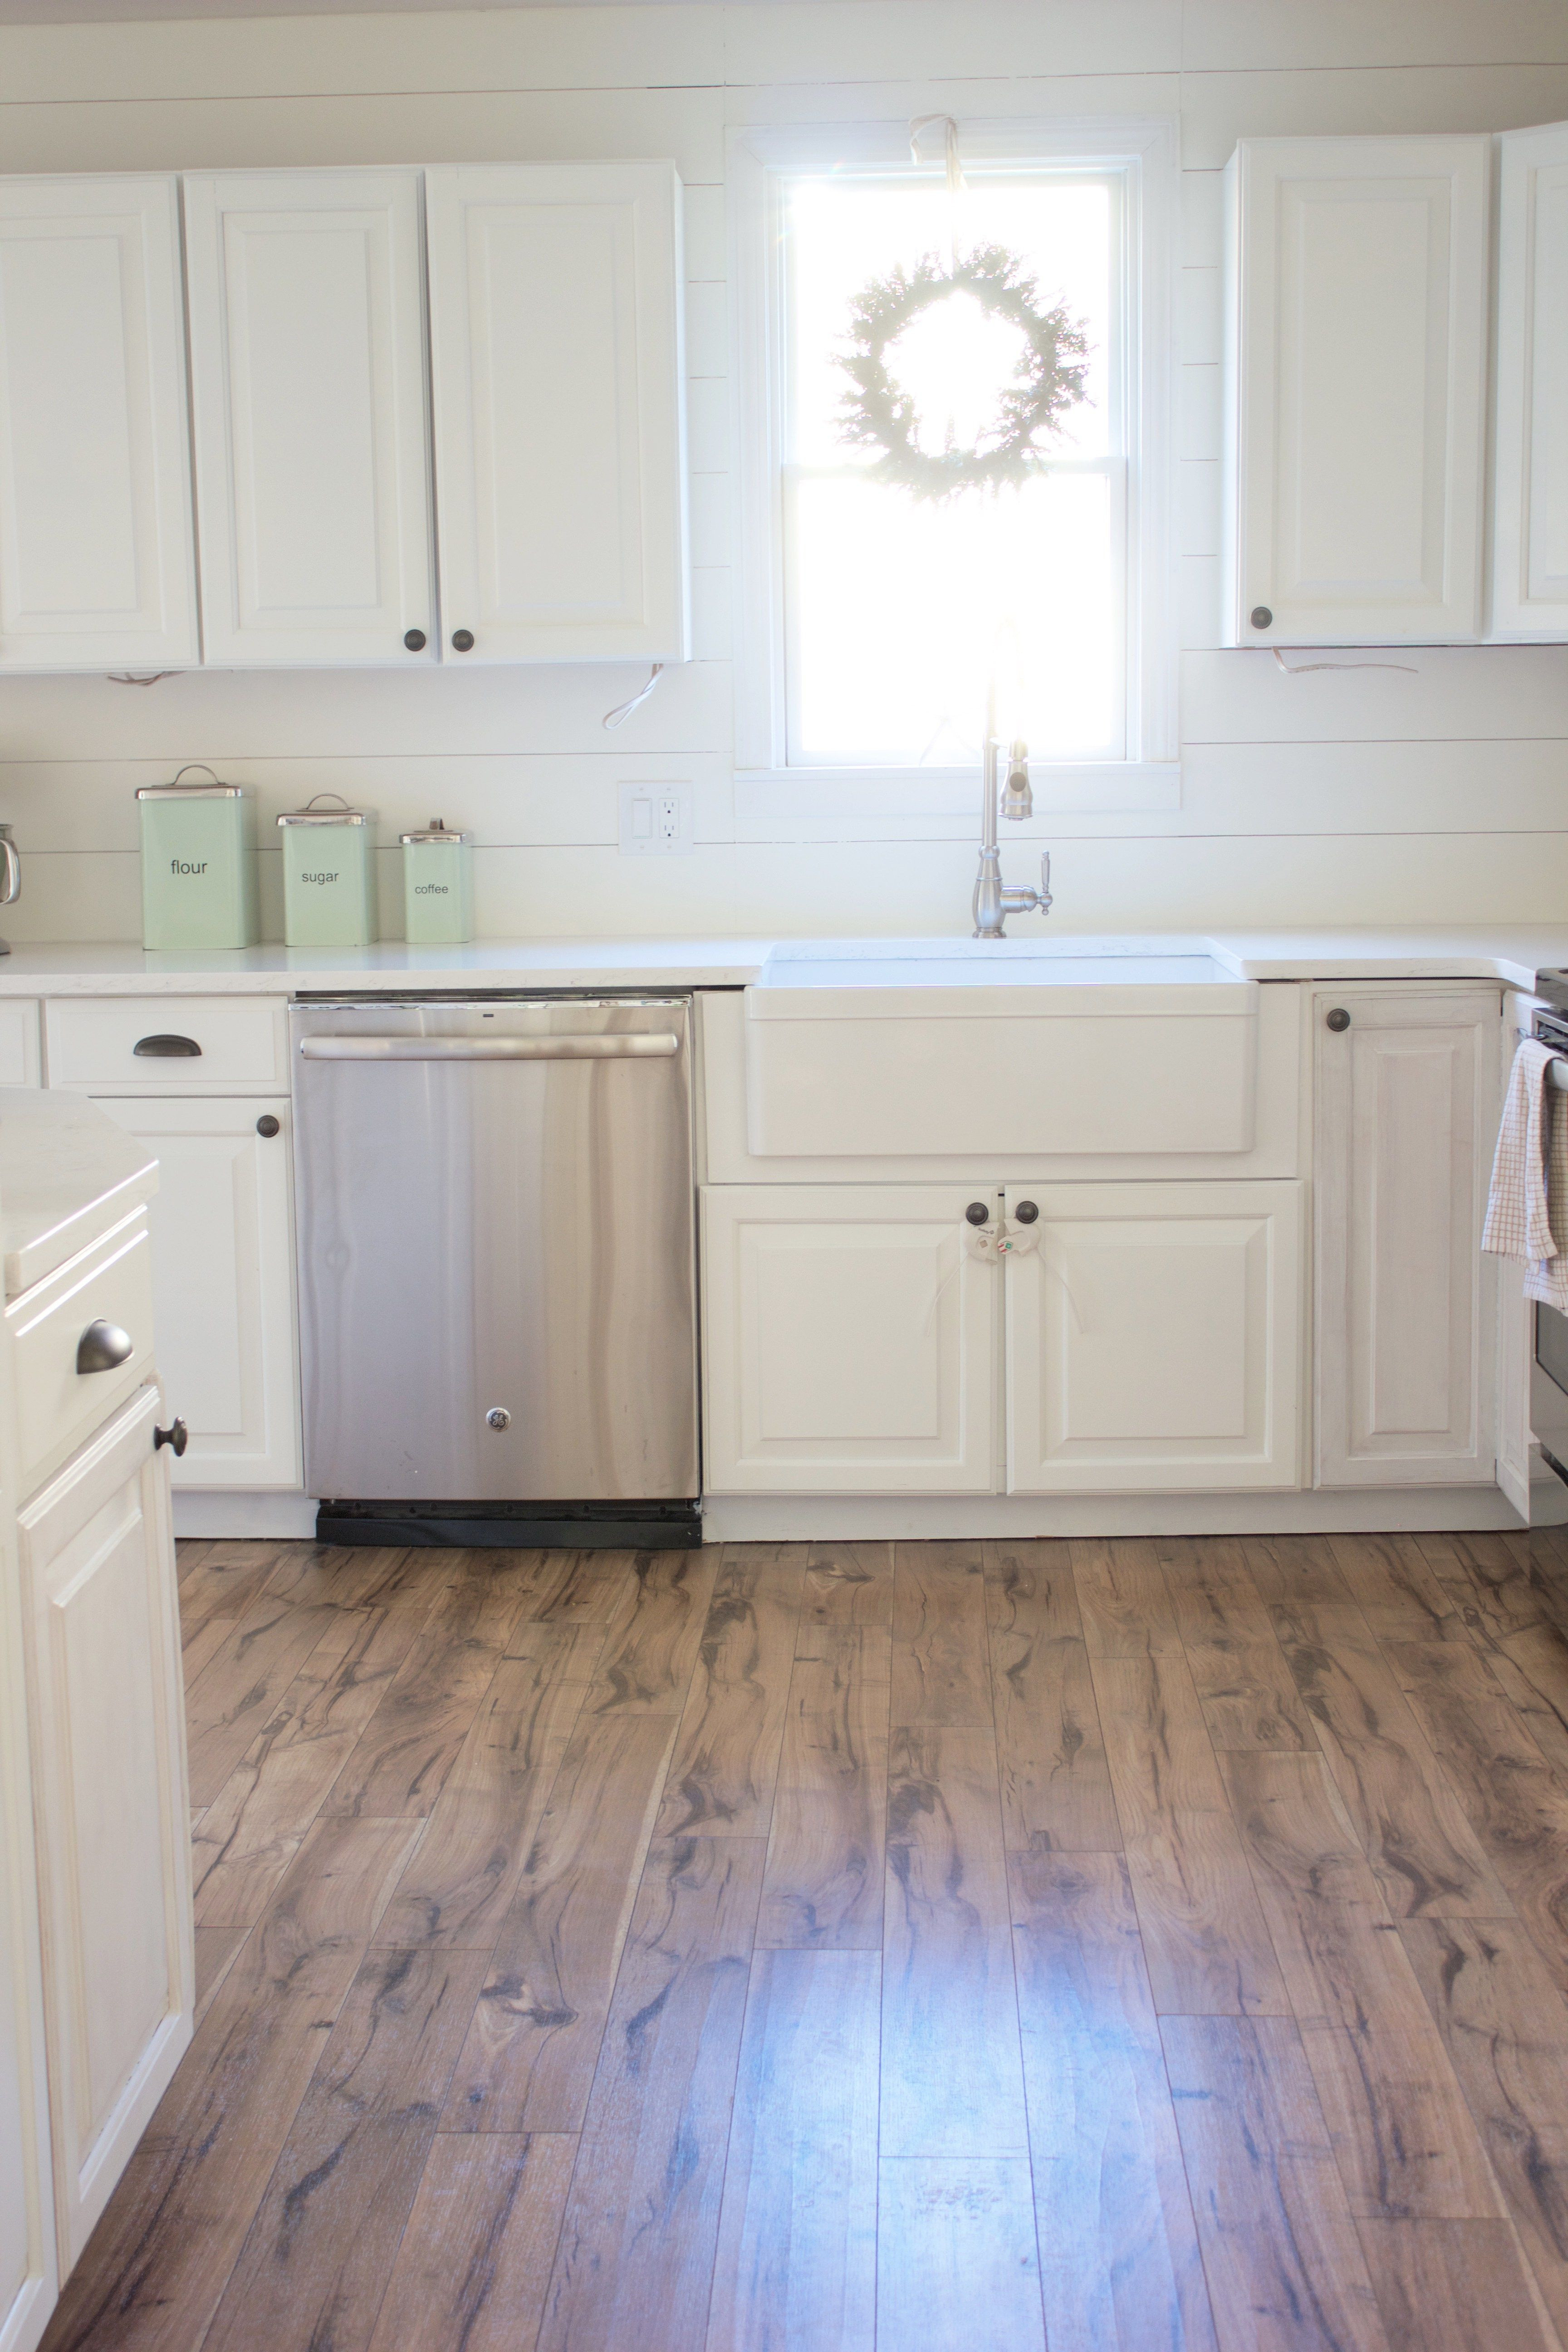 pergo hardwood flooring reviews of a review on how and why we chose pergo laminate flooring over intended for a review on how and why we chose pergo laminate flooring over hardwood flooringcolors of vinyl wood two colors basement pinterest